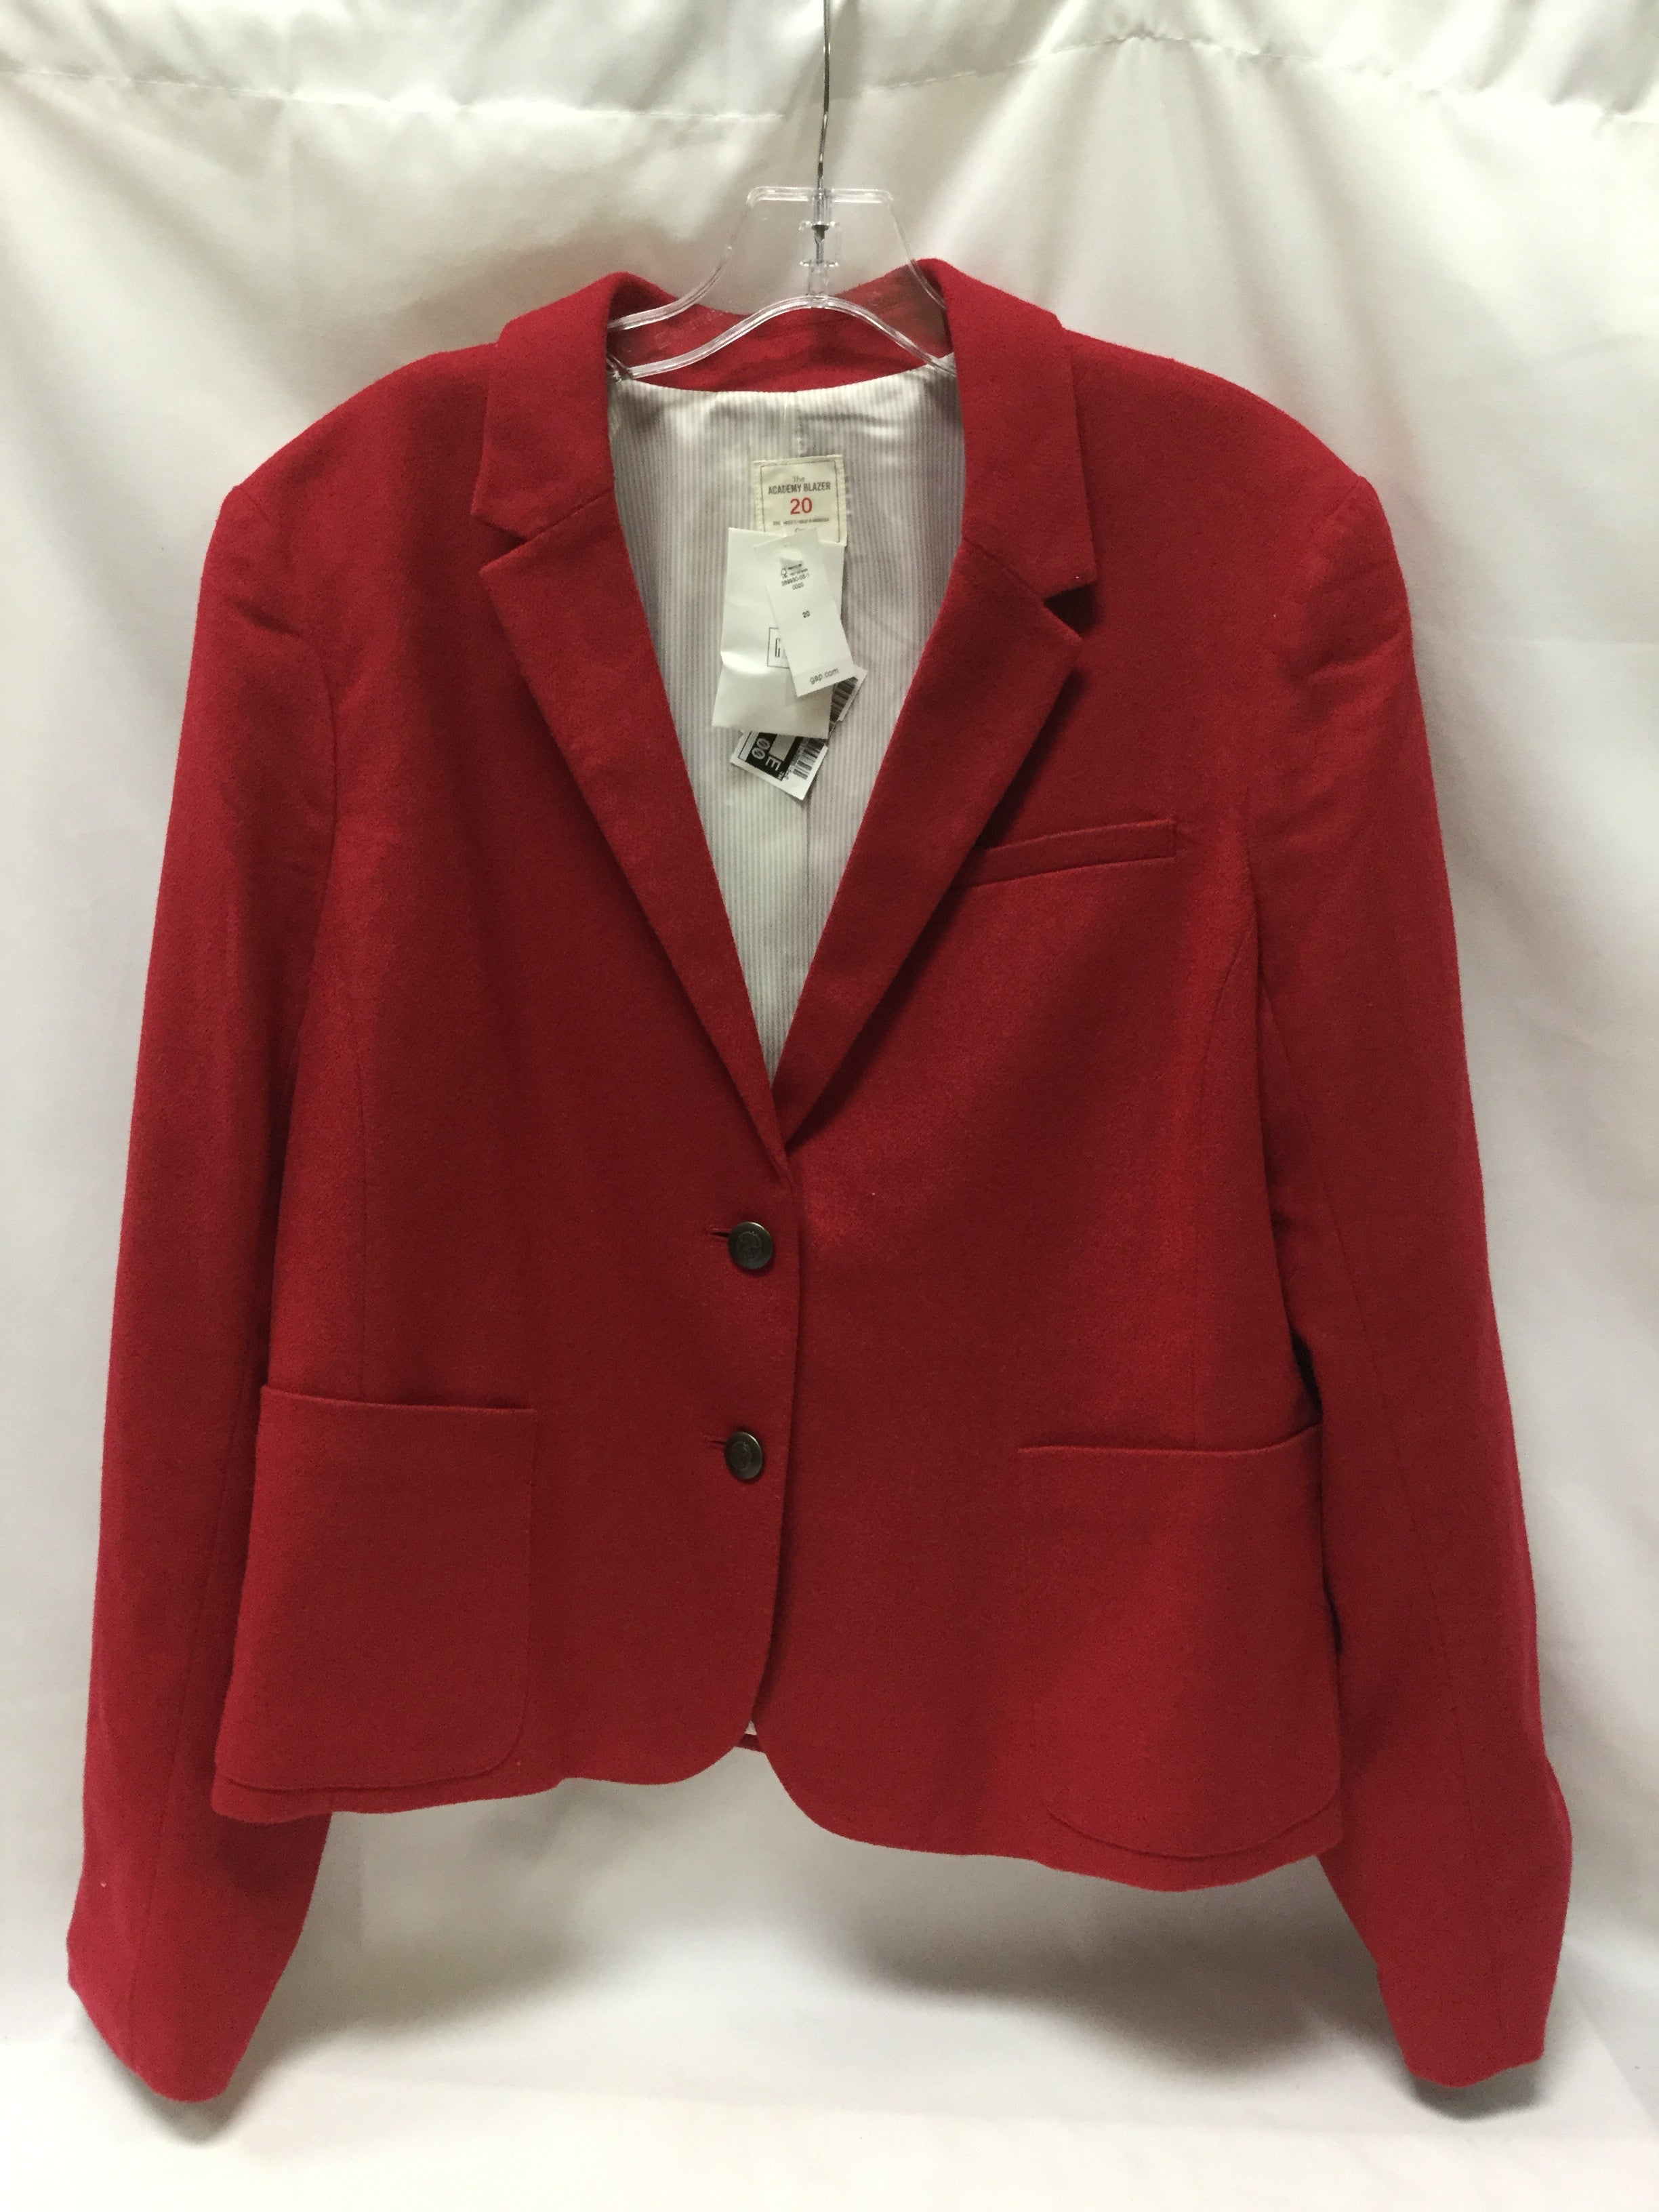 Primary Photo - BRAND: GAP <BR>STYLE: BLAZER JACKET <BR>COLOR: RED <BR>SIZE: 1X <BR>SKU: 155-15599-228309